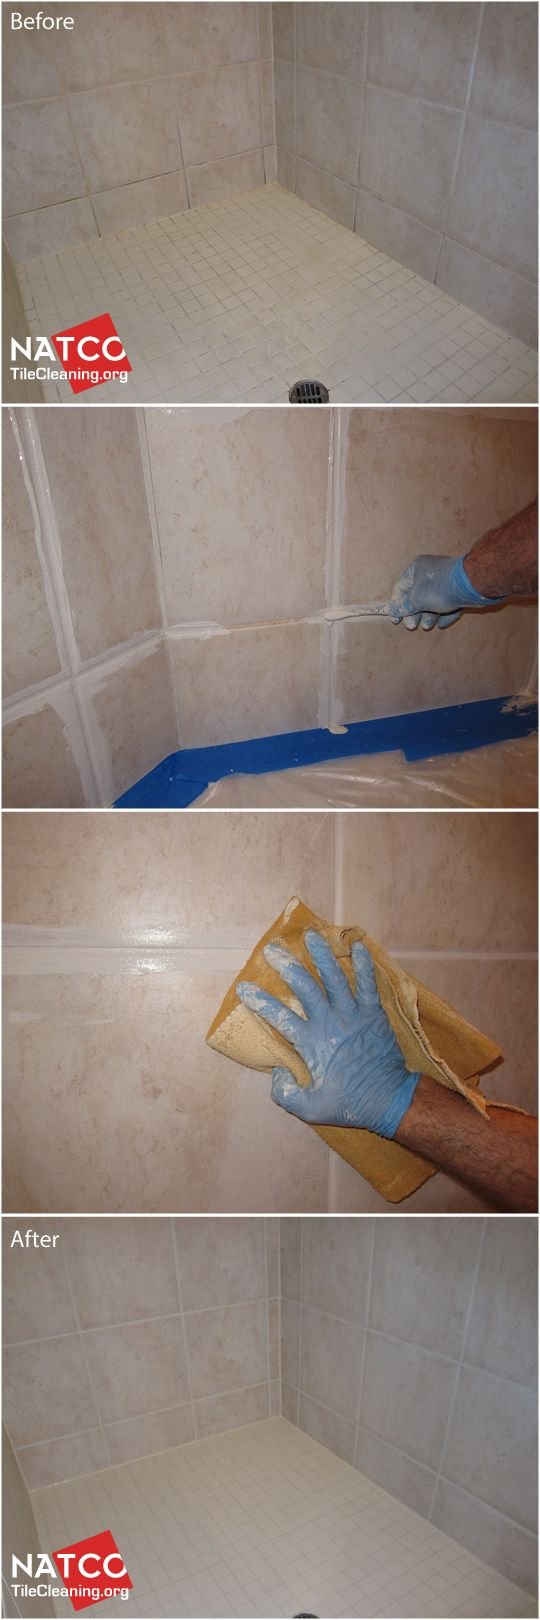 17 best images about cleaning moldy shower grout and caulk on pinterest ceramics clean tile for How to clean bathroom grout mold